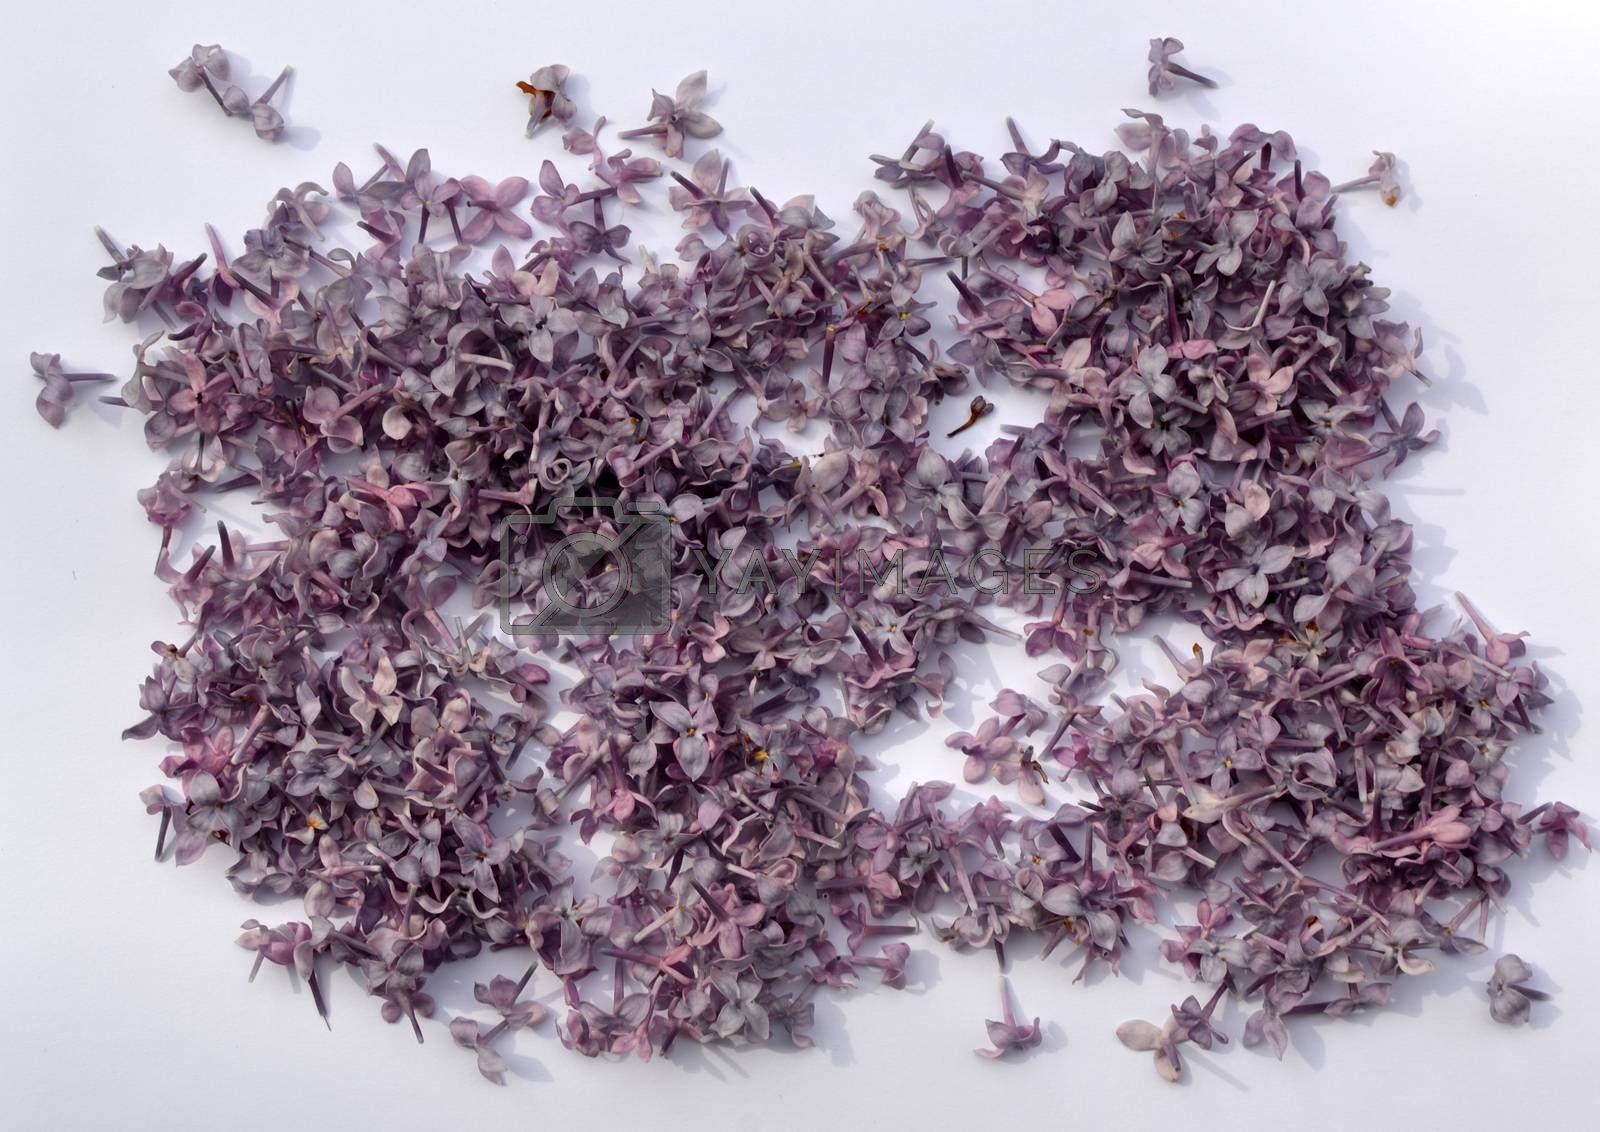 A bunch of violet lilac on white background